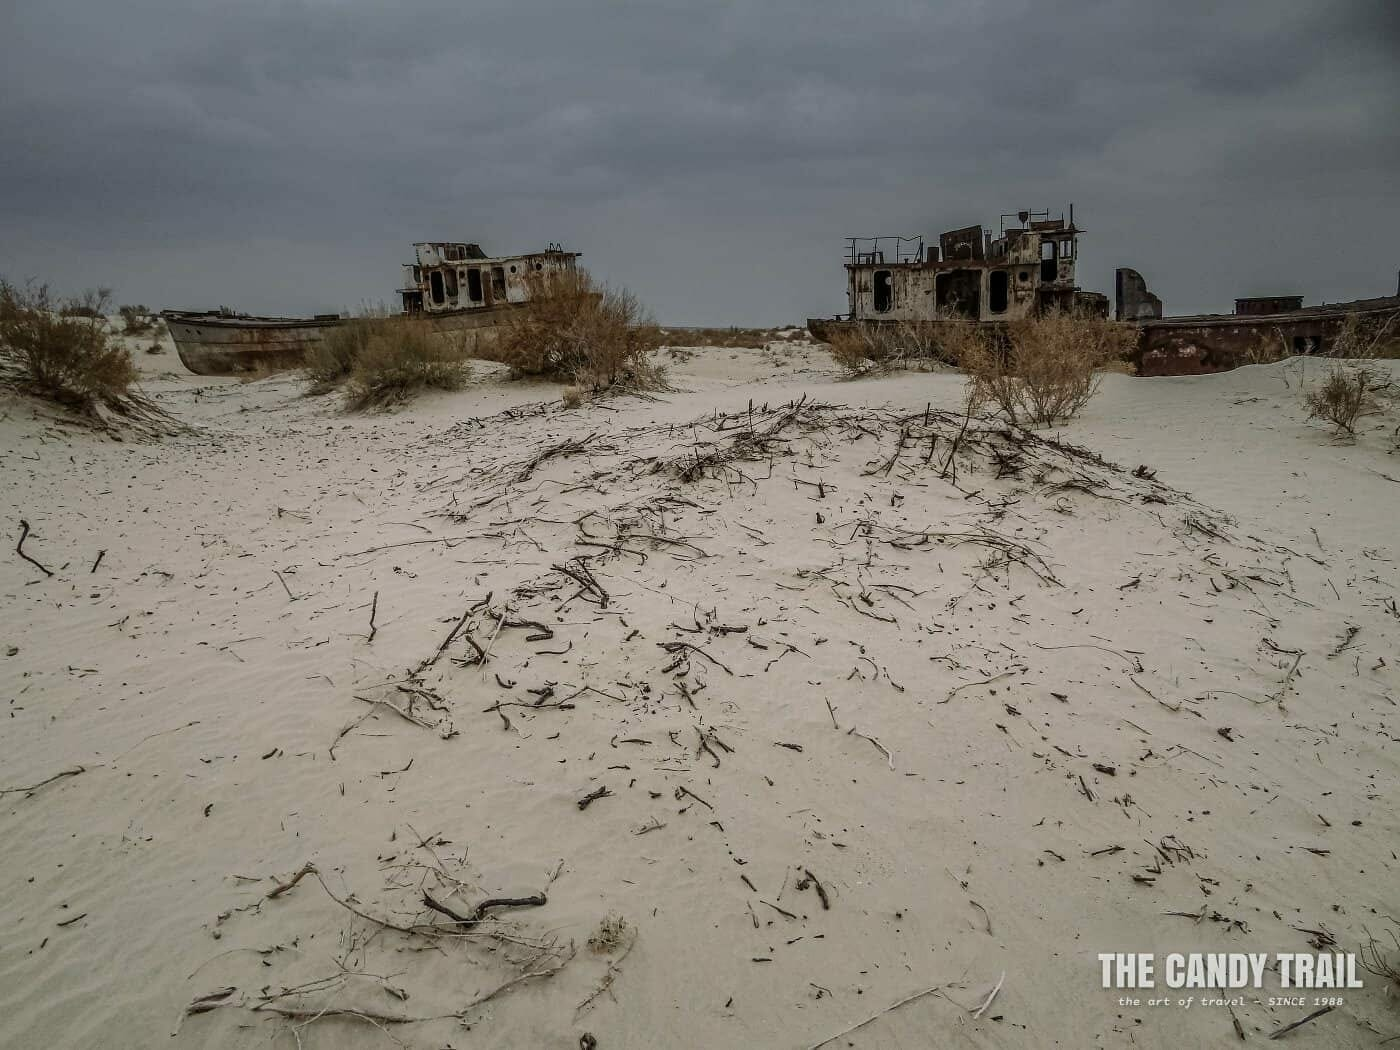 images aral sea ships pictures in sand at moynaq in uzbekistan